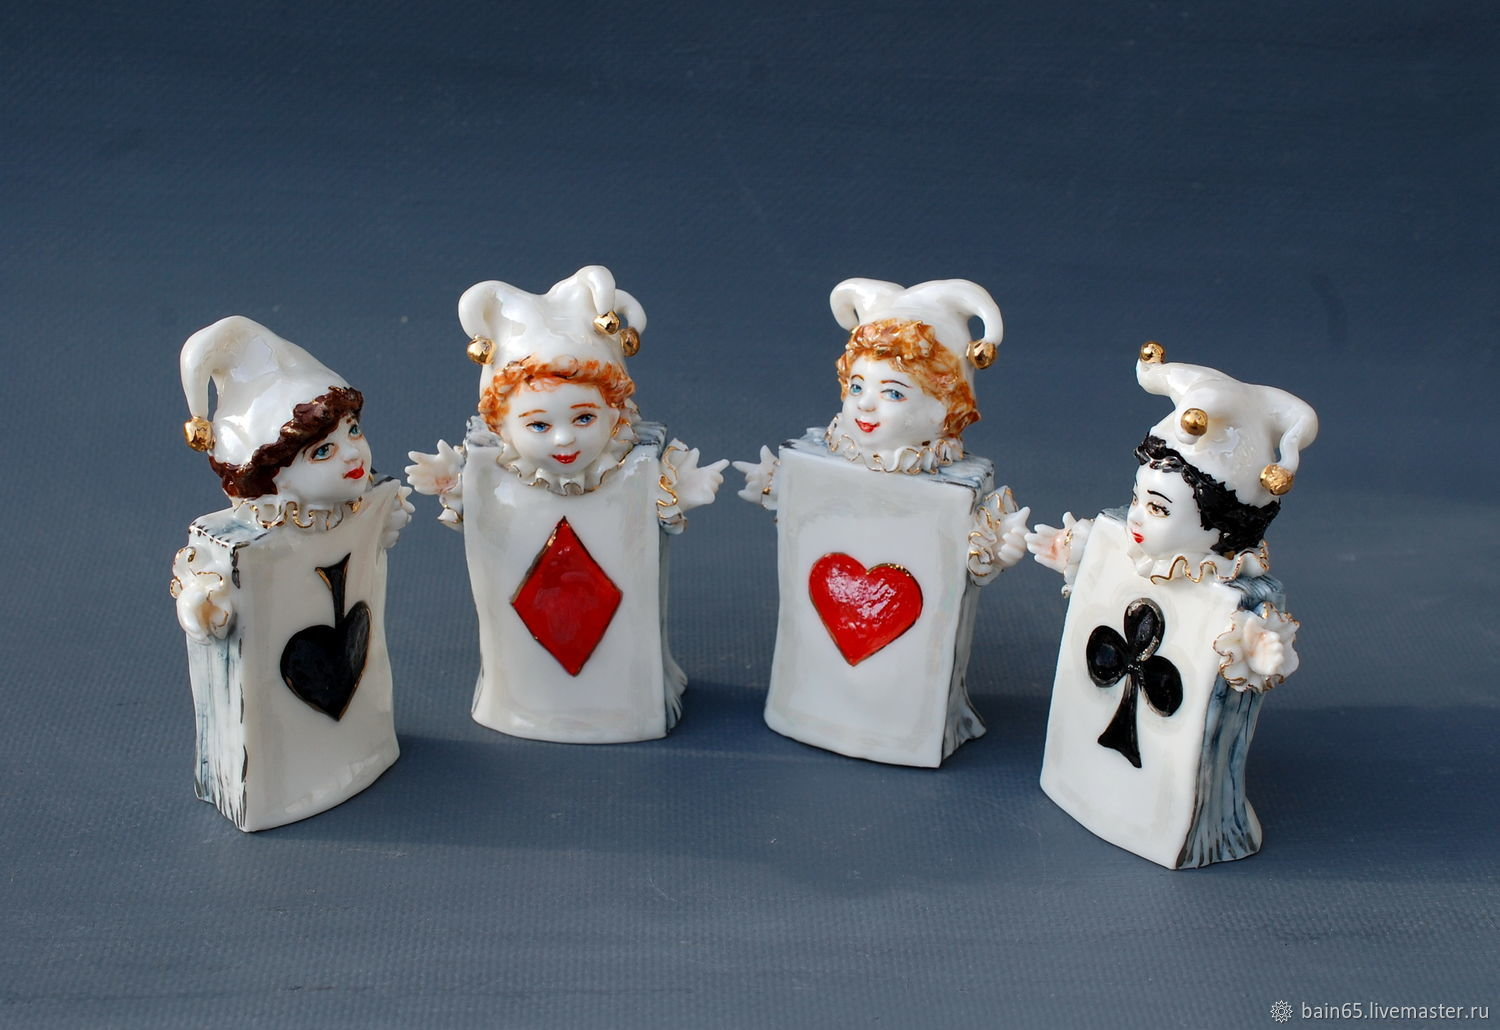 'Aces ' Porcelain figurines-bells, Figurines, Moscow,  Фото №1